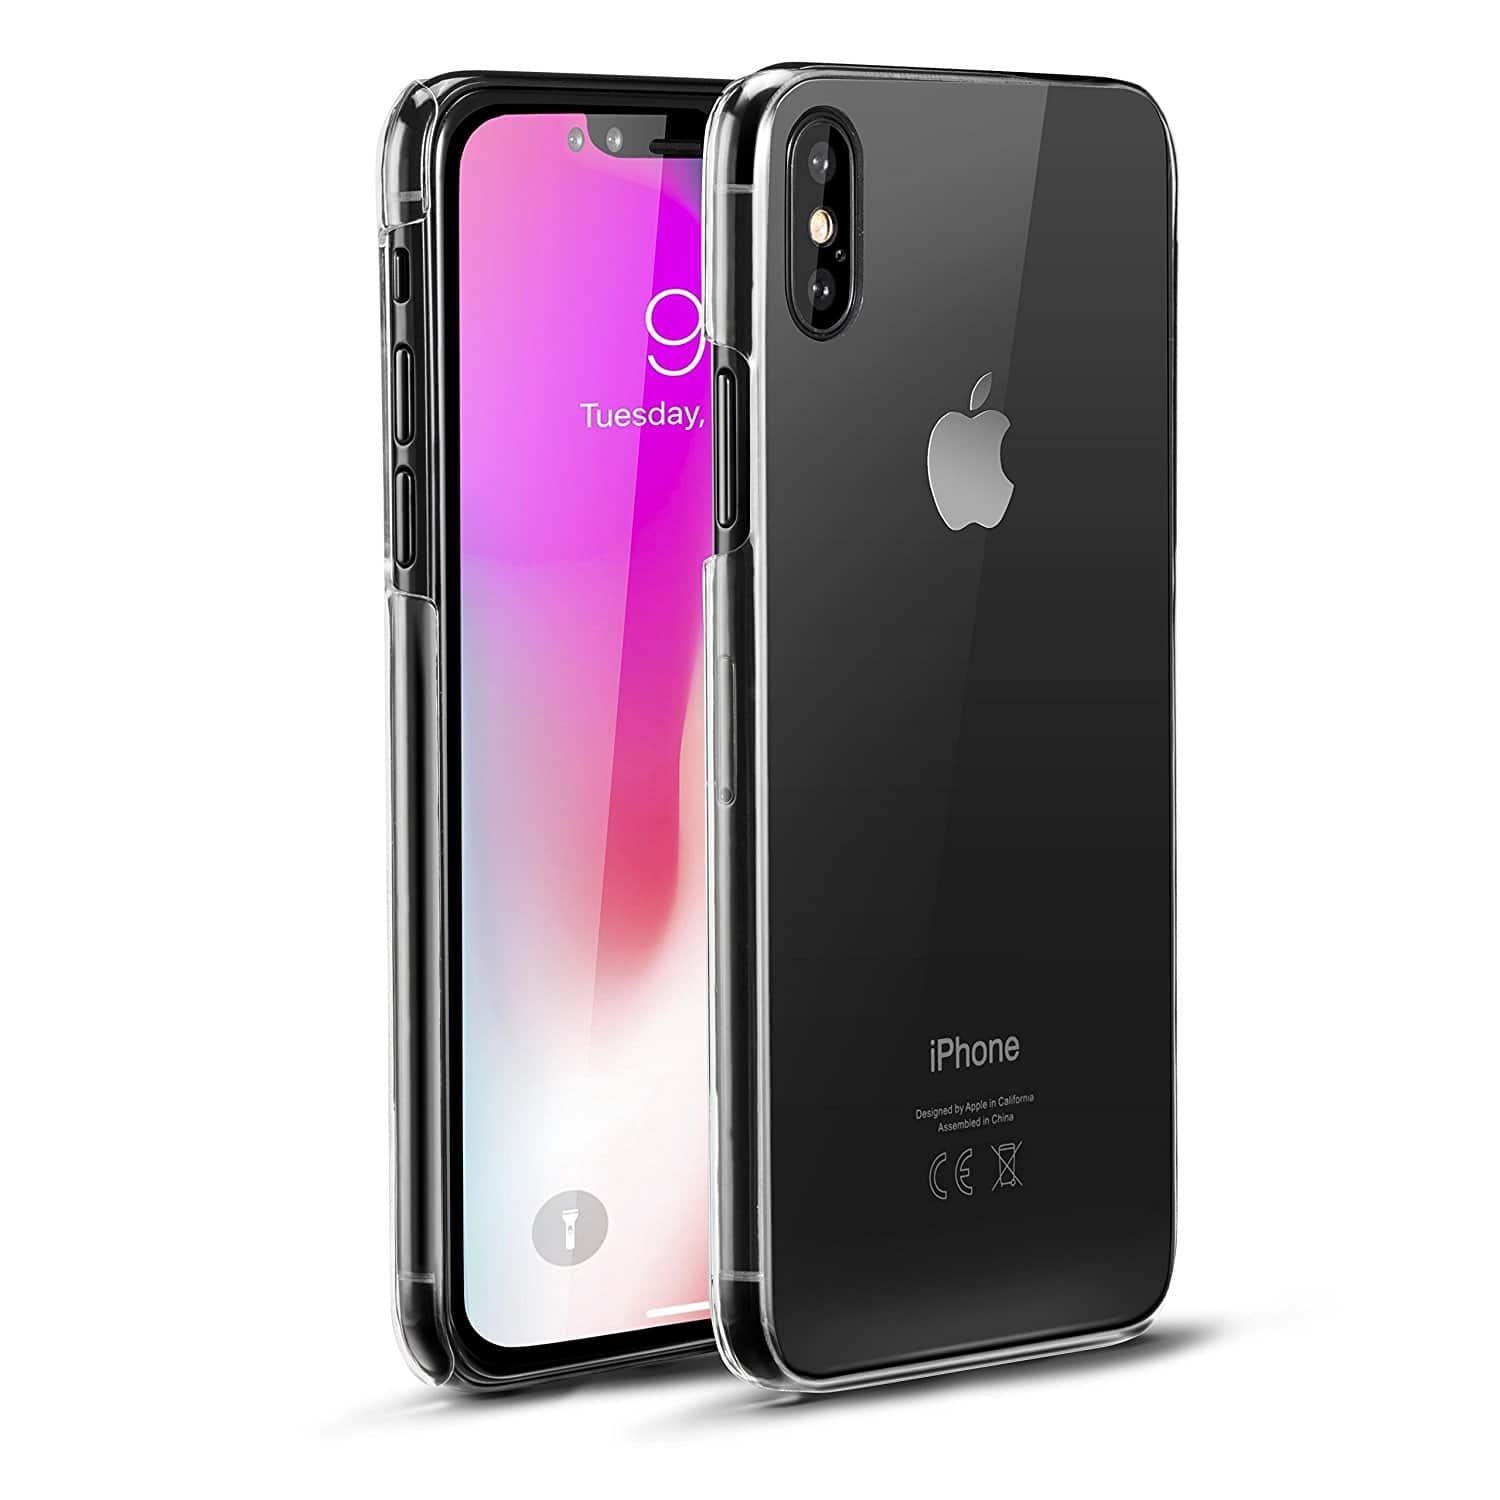 iPhone X Case Series 70% Off, Price from $3.29, Free Shipping @ Amazon